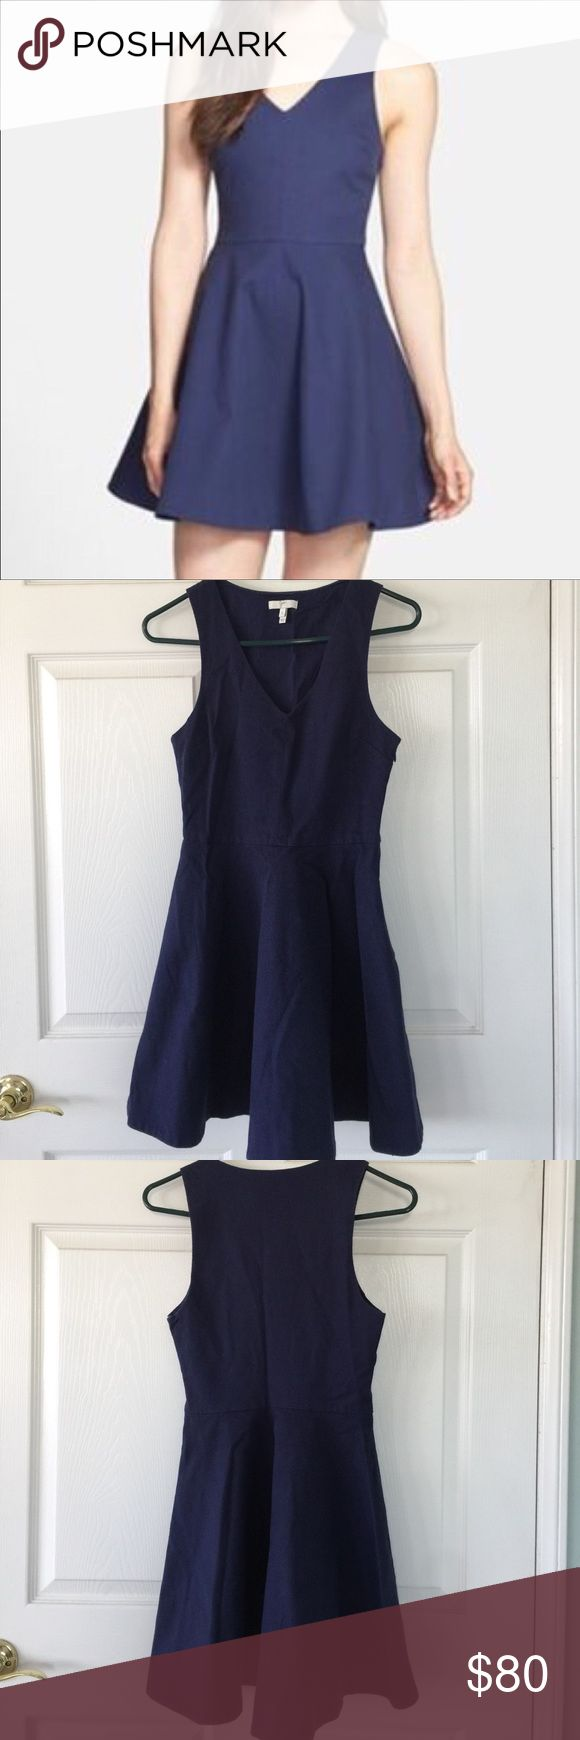 """Joie Norton Dress Love love love this only its too small in the chest for me :( it's a gorgeous Joie dress in navy blue.  Fabric is textured with side zip closure and is approx  32 1/2"""" long and 15 1/2"""" across the chest Joie Dresses"""